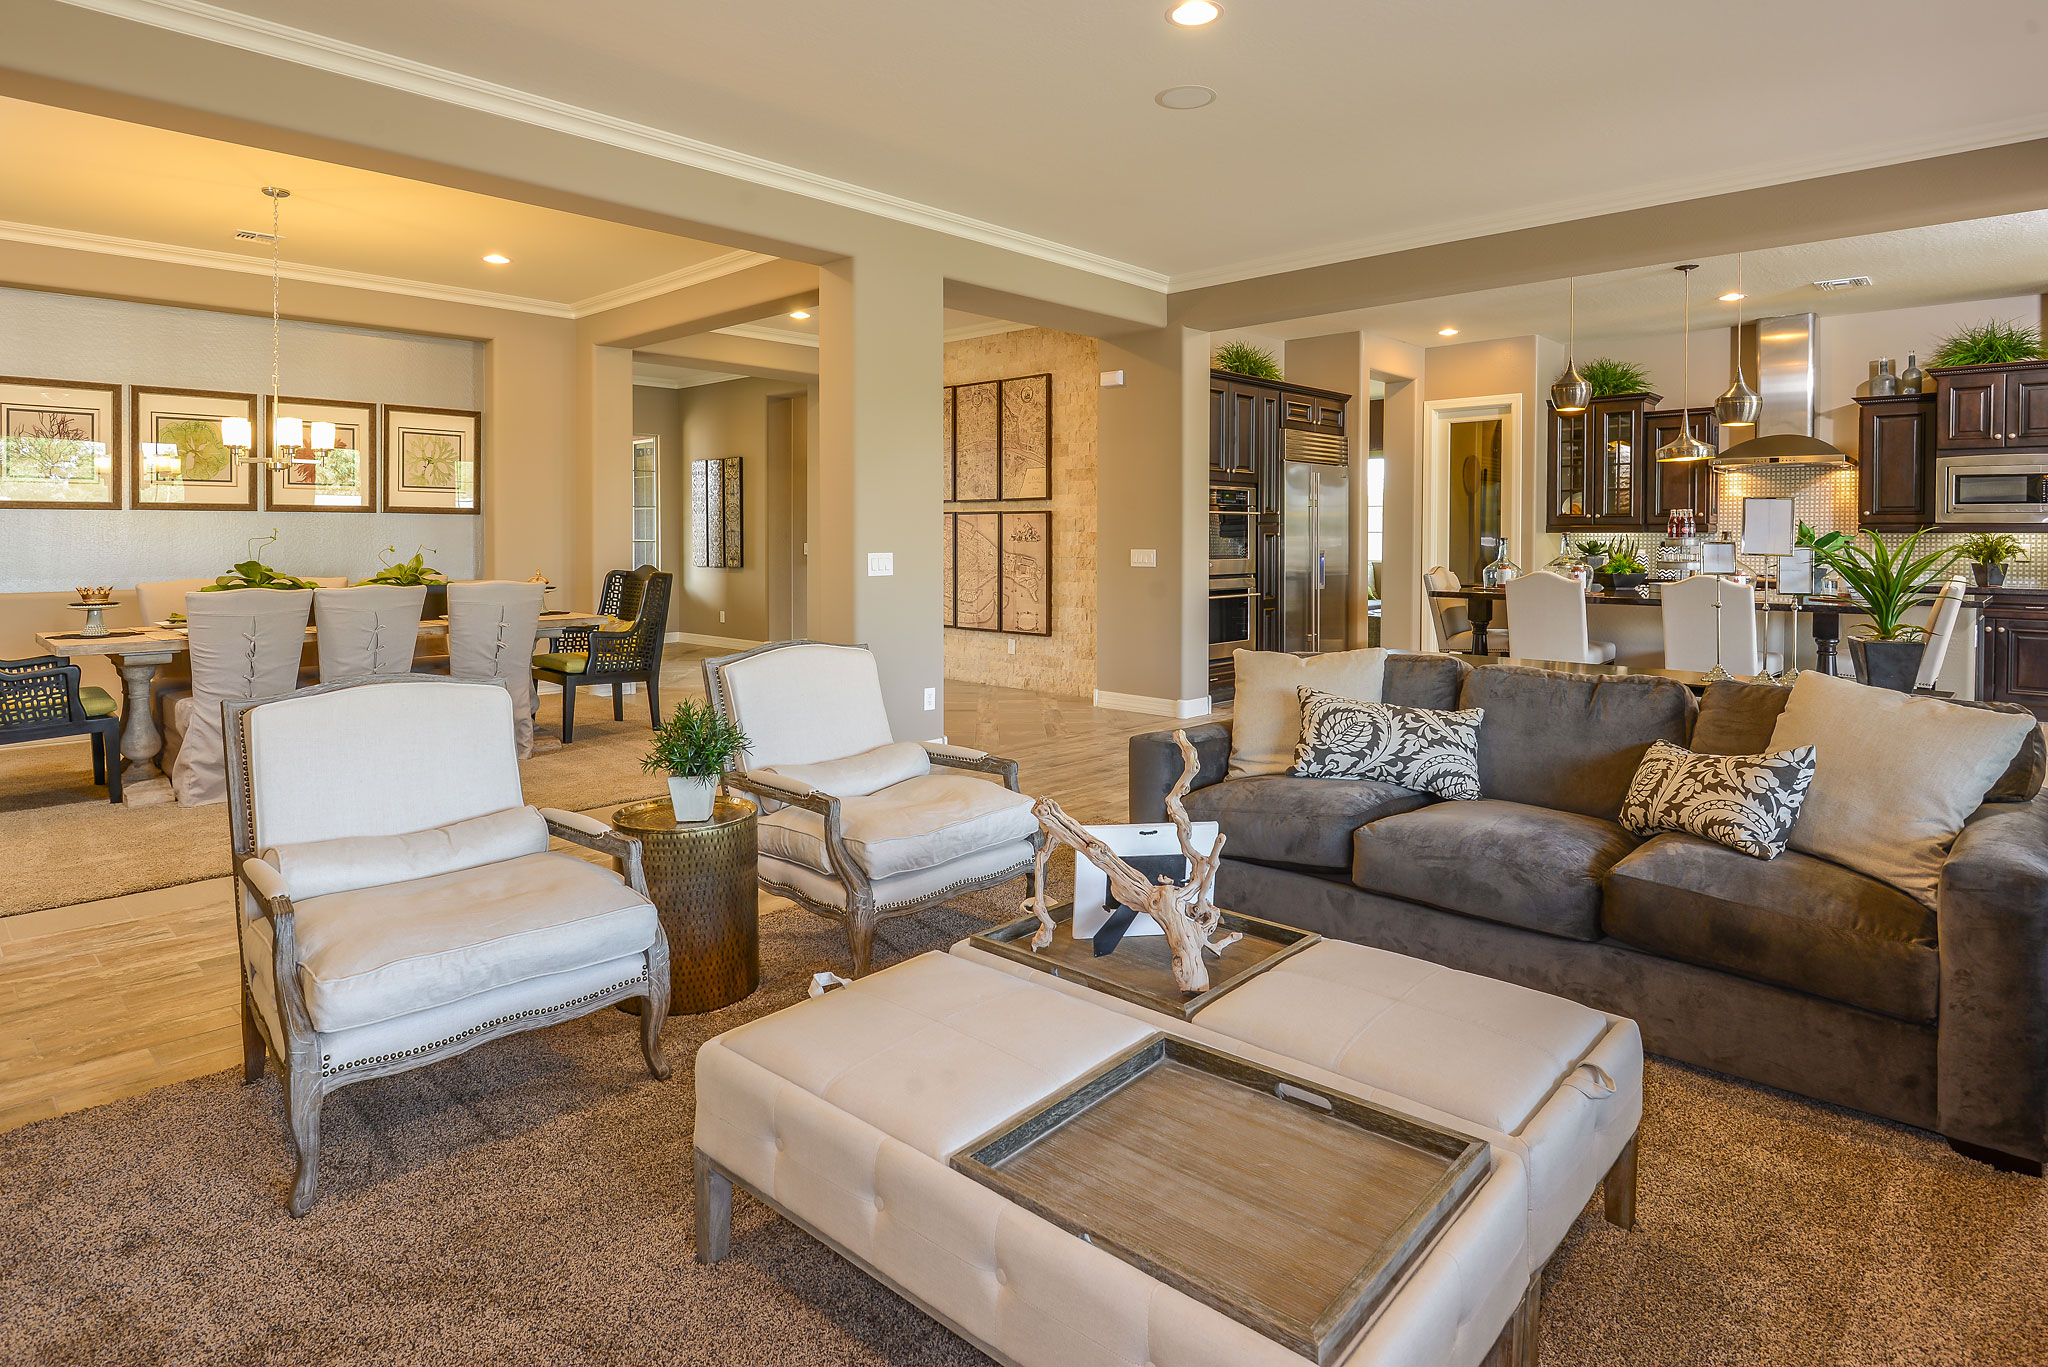 taylor morrison debuts three new collections of homes at northlands is part of the peoria unified school district offering school aged children specialized signature programs championship athletic programs and